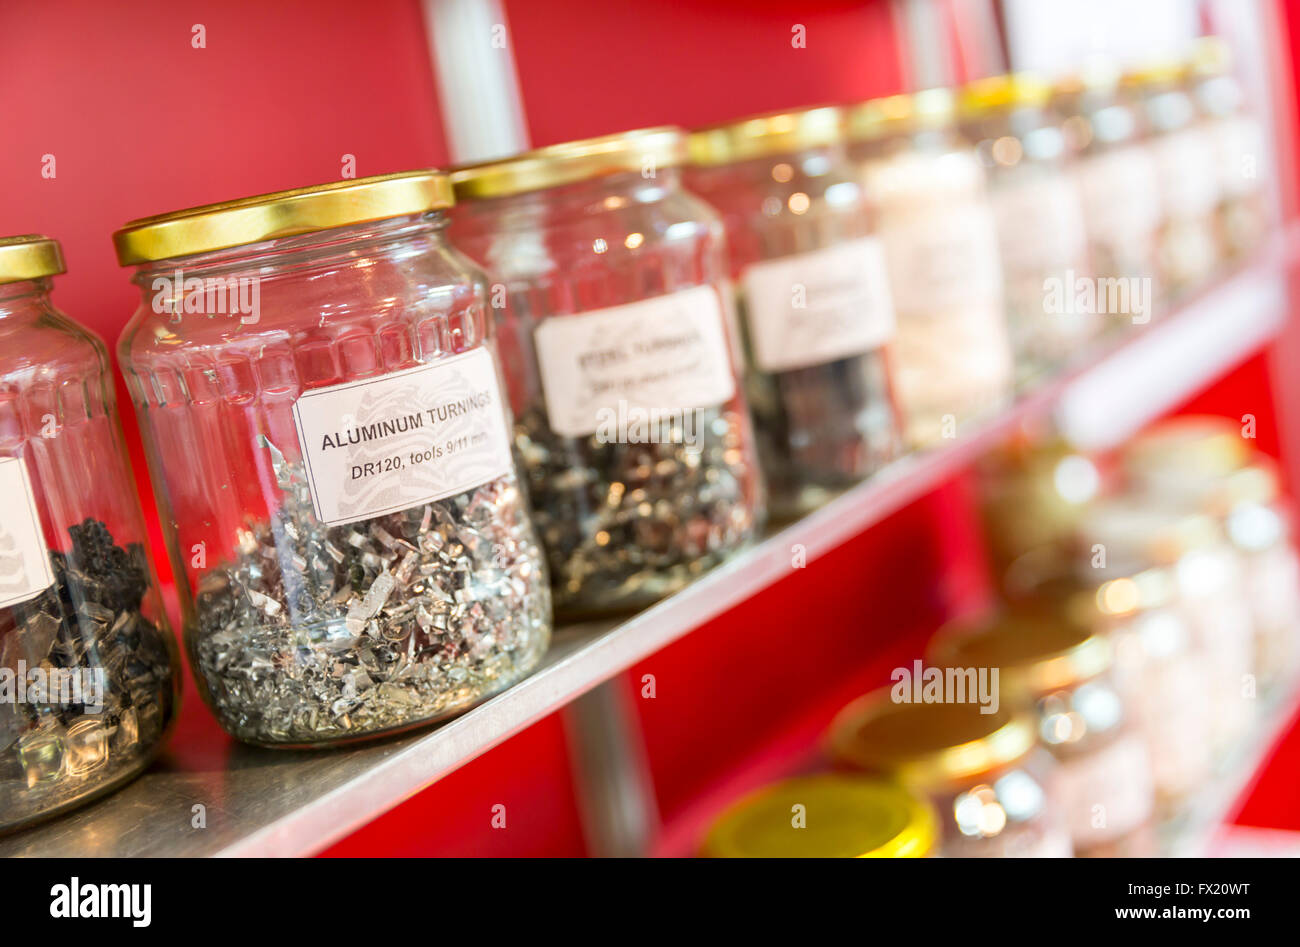 Aluminum turnings in a glass jar among other jars full of different metal turnings result of metal cutting. - Stock Image